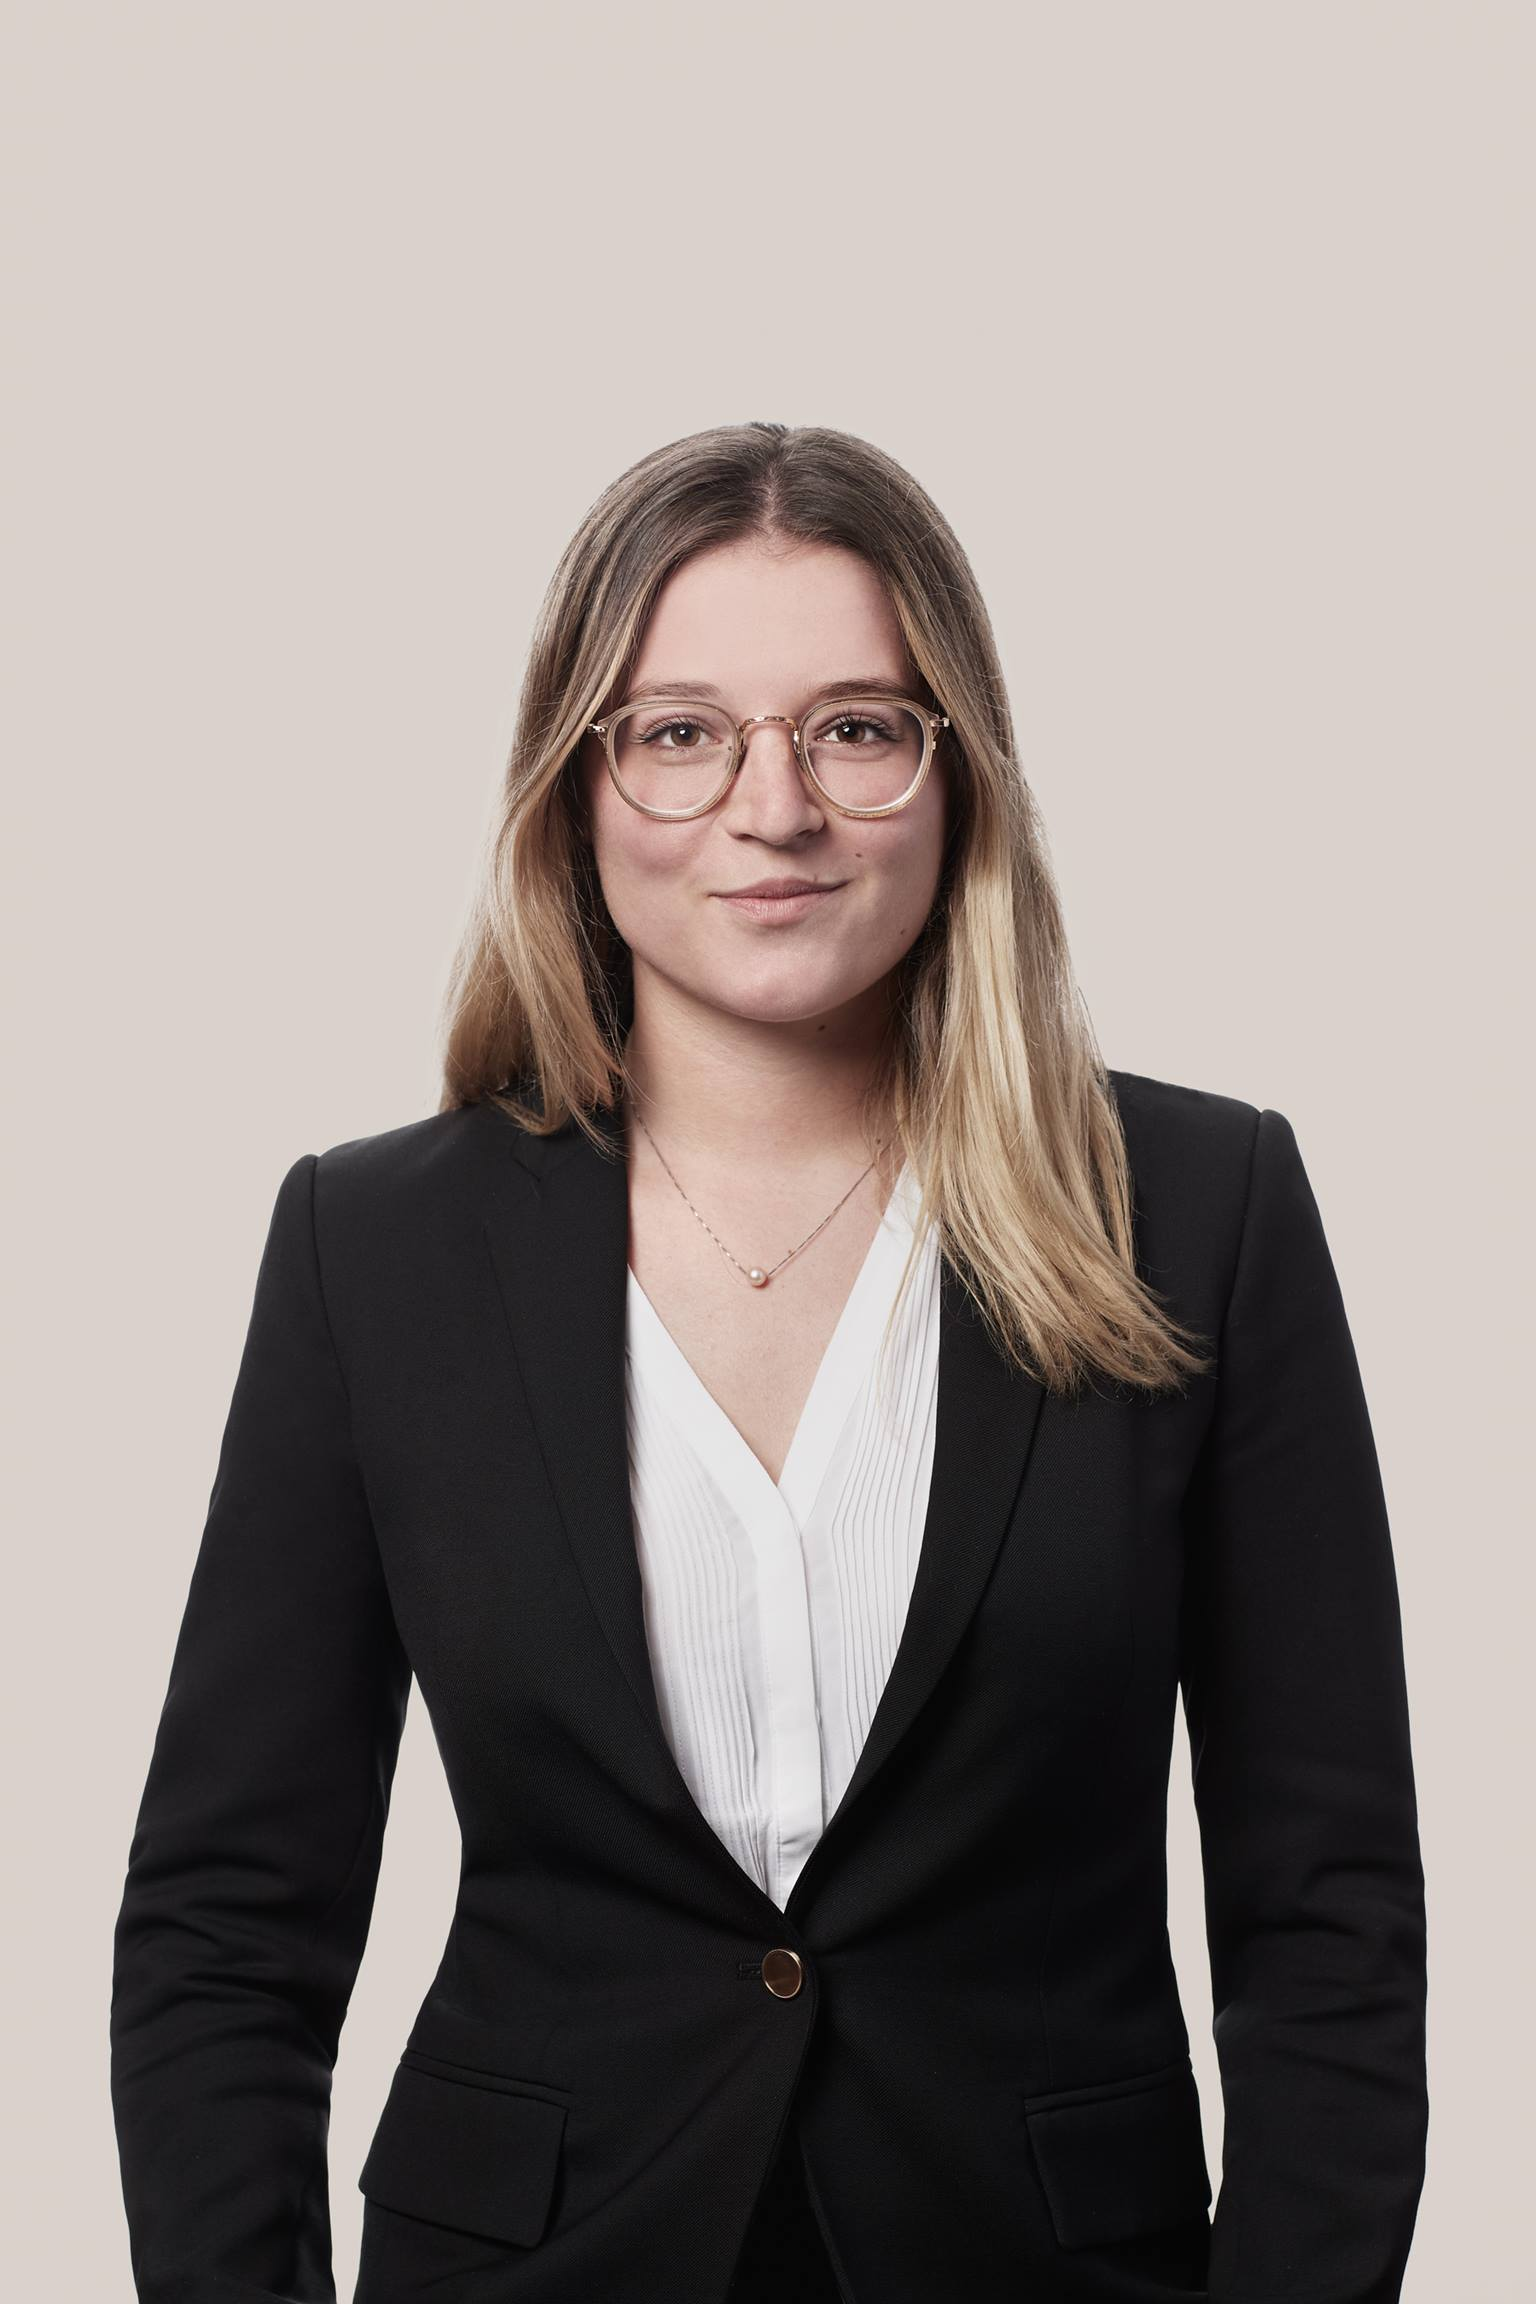 Marilou Simard | Summer Law Student in Montréal